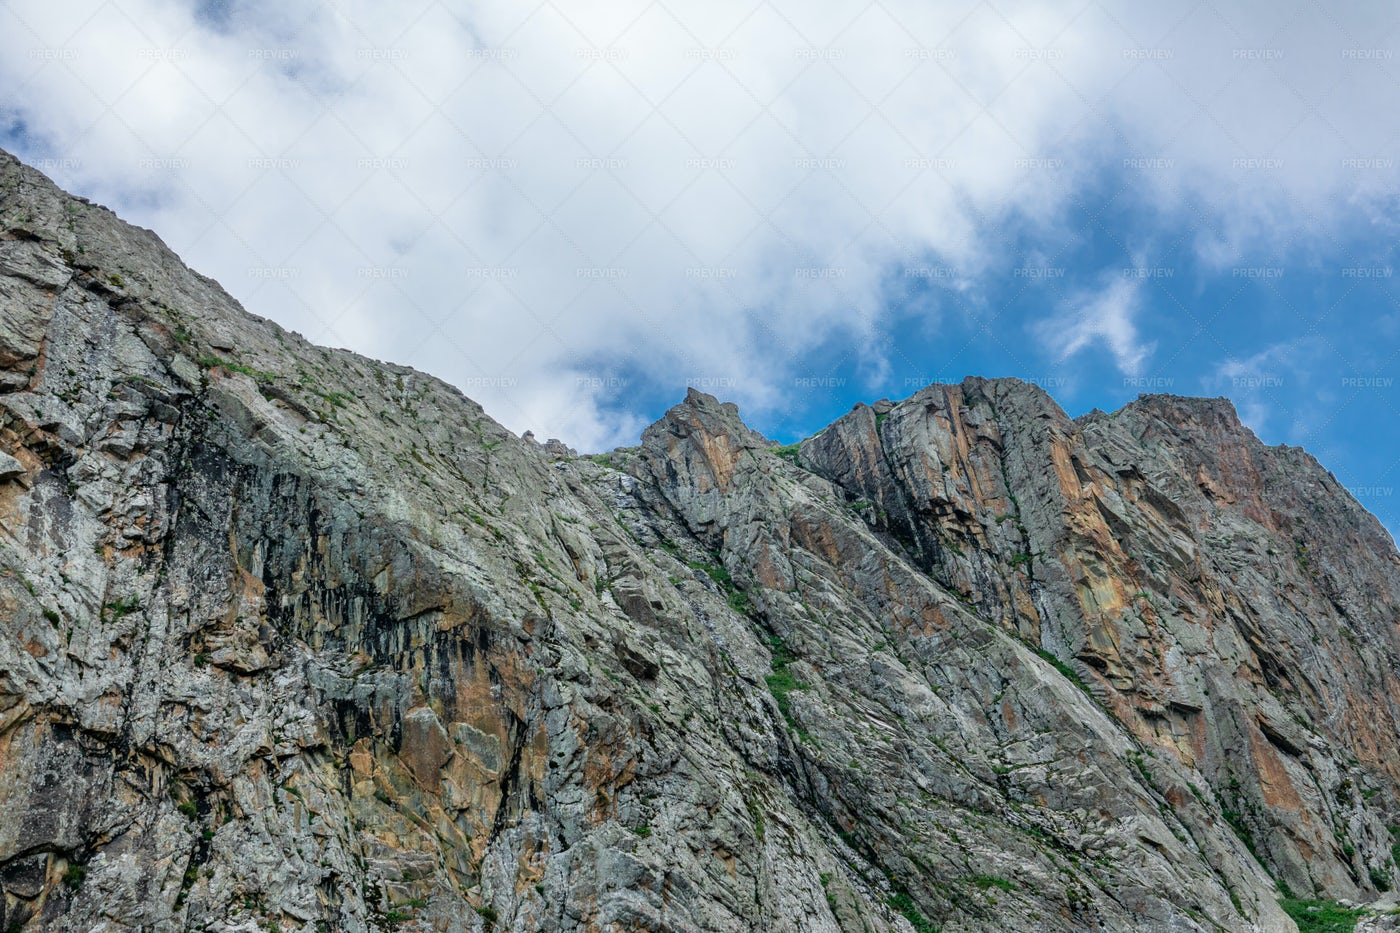 Large Cliffs In The Mountains: Stock Photos